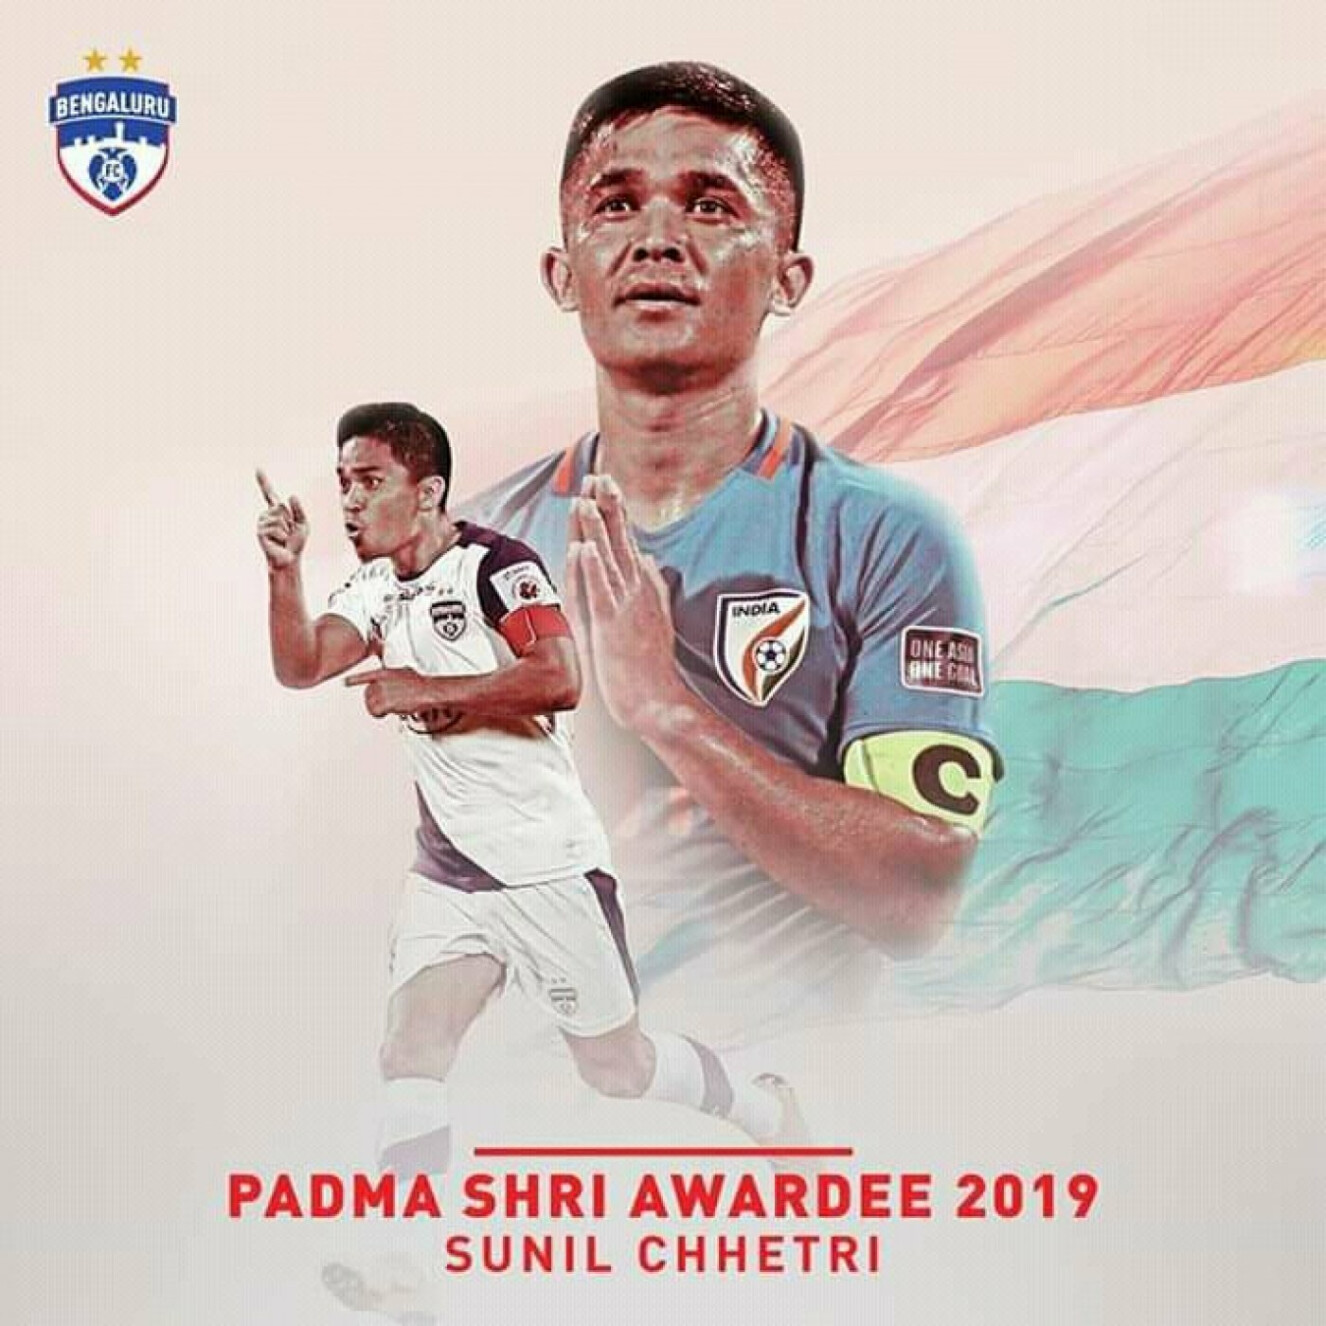 Sunil Chhetri awarded the Padma Shri Award